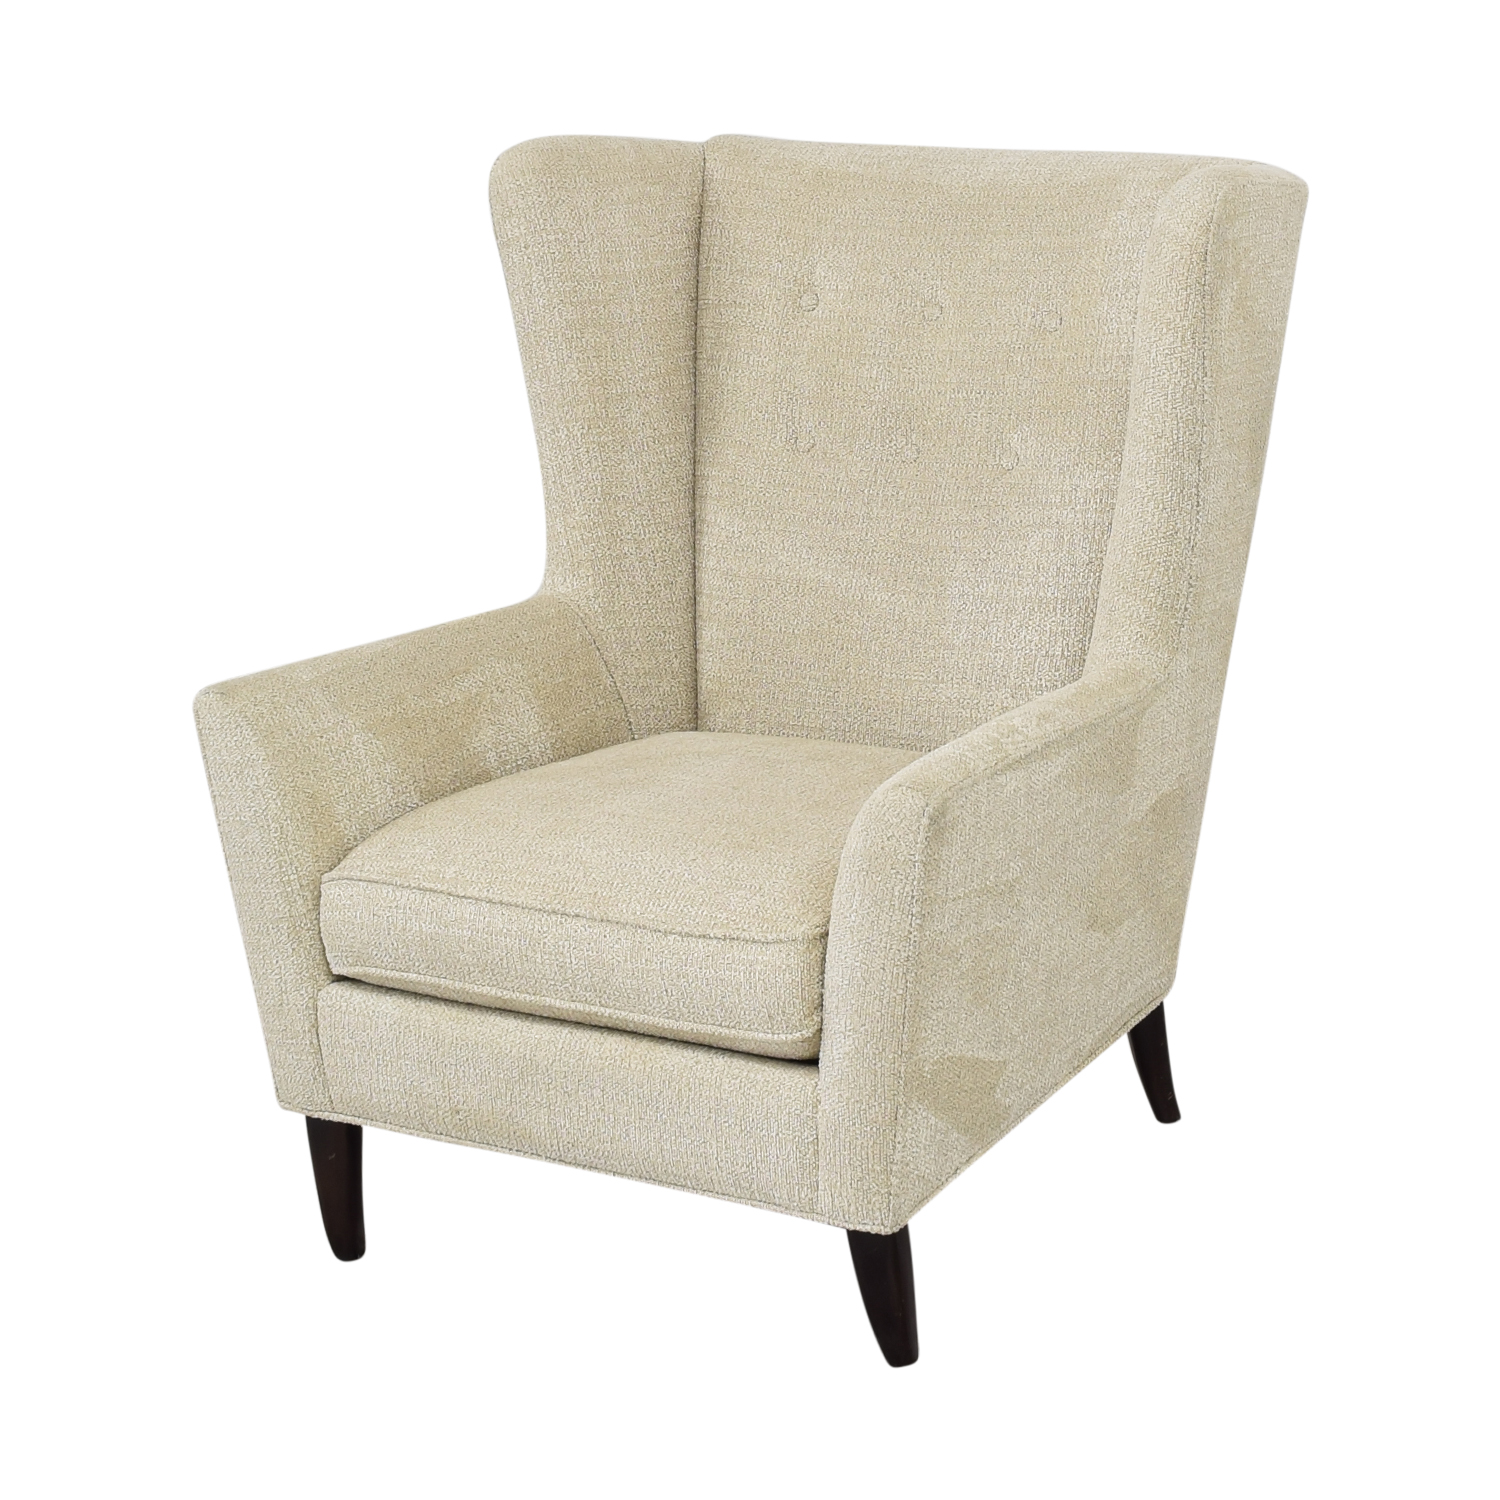 85% OFF - DwellStudio DwellStudio Porter Armchair / Chairs